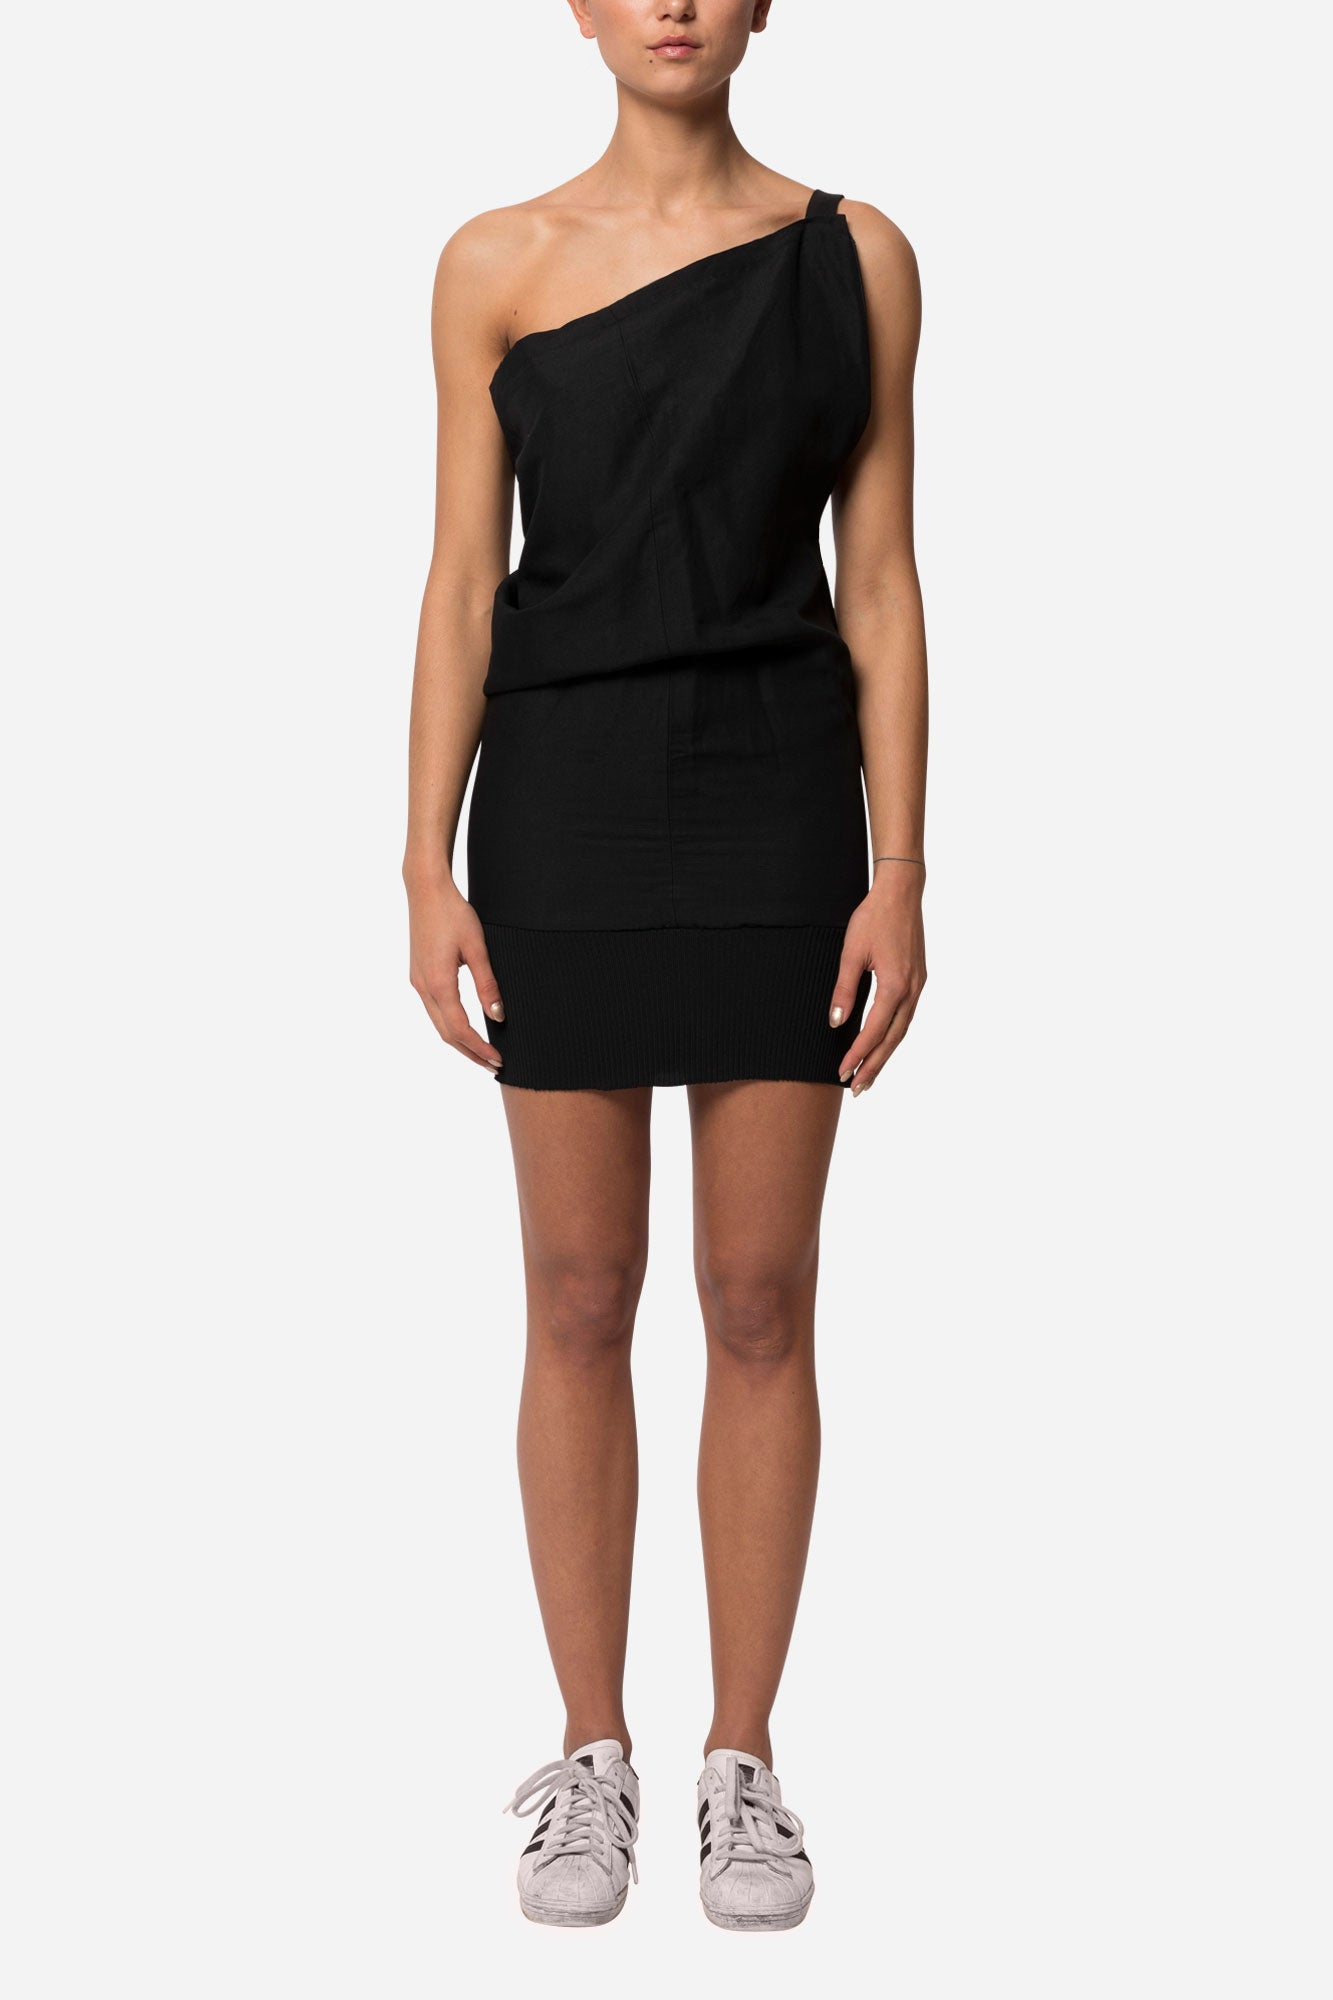 Asymmetric dress - Tindi